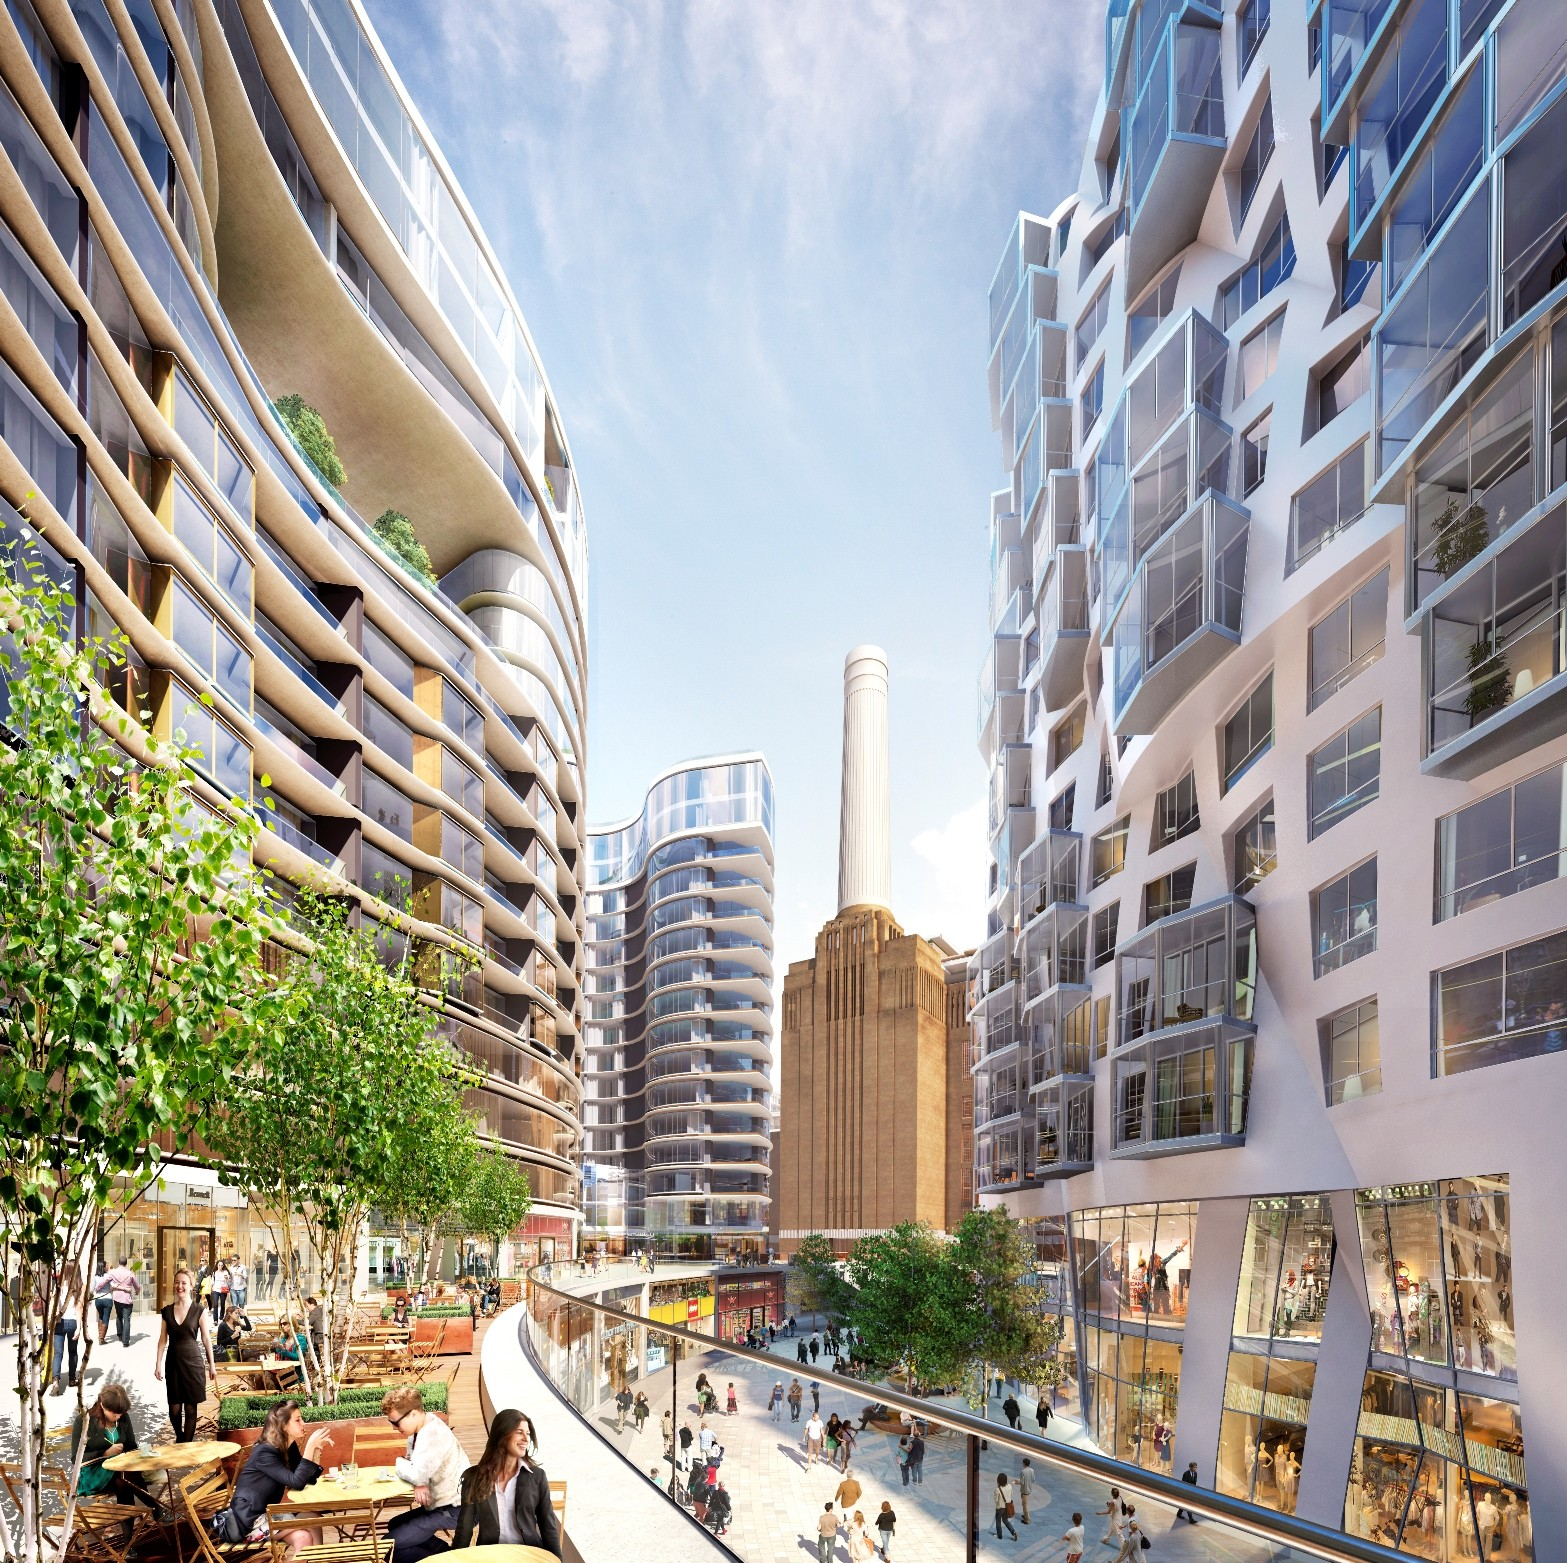 New Images Released Of Foster And Gehry S Battersea Station Designs